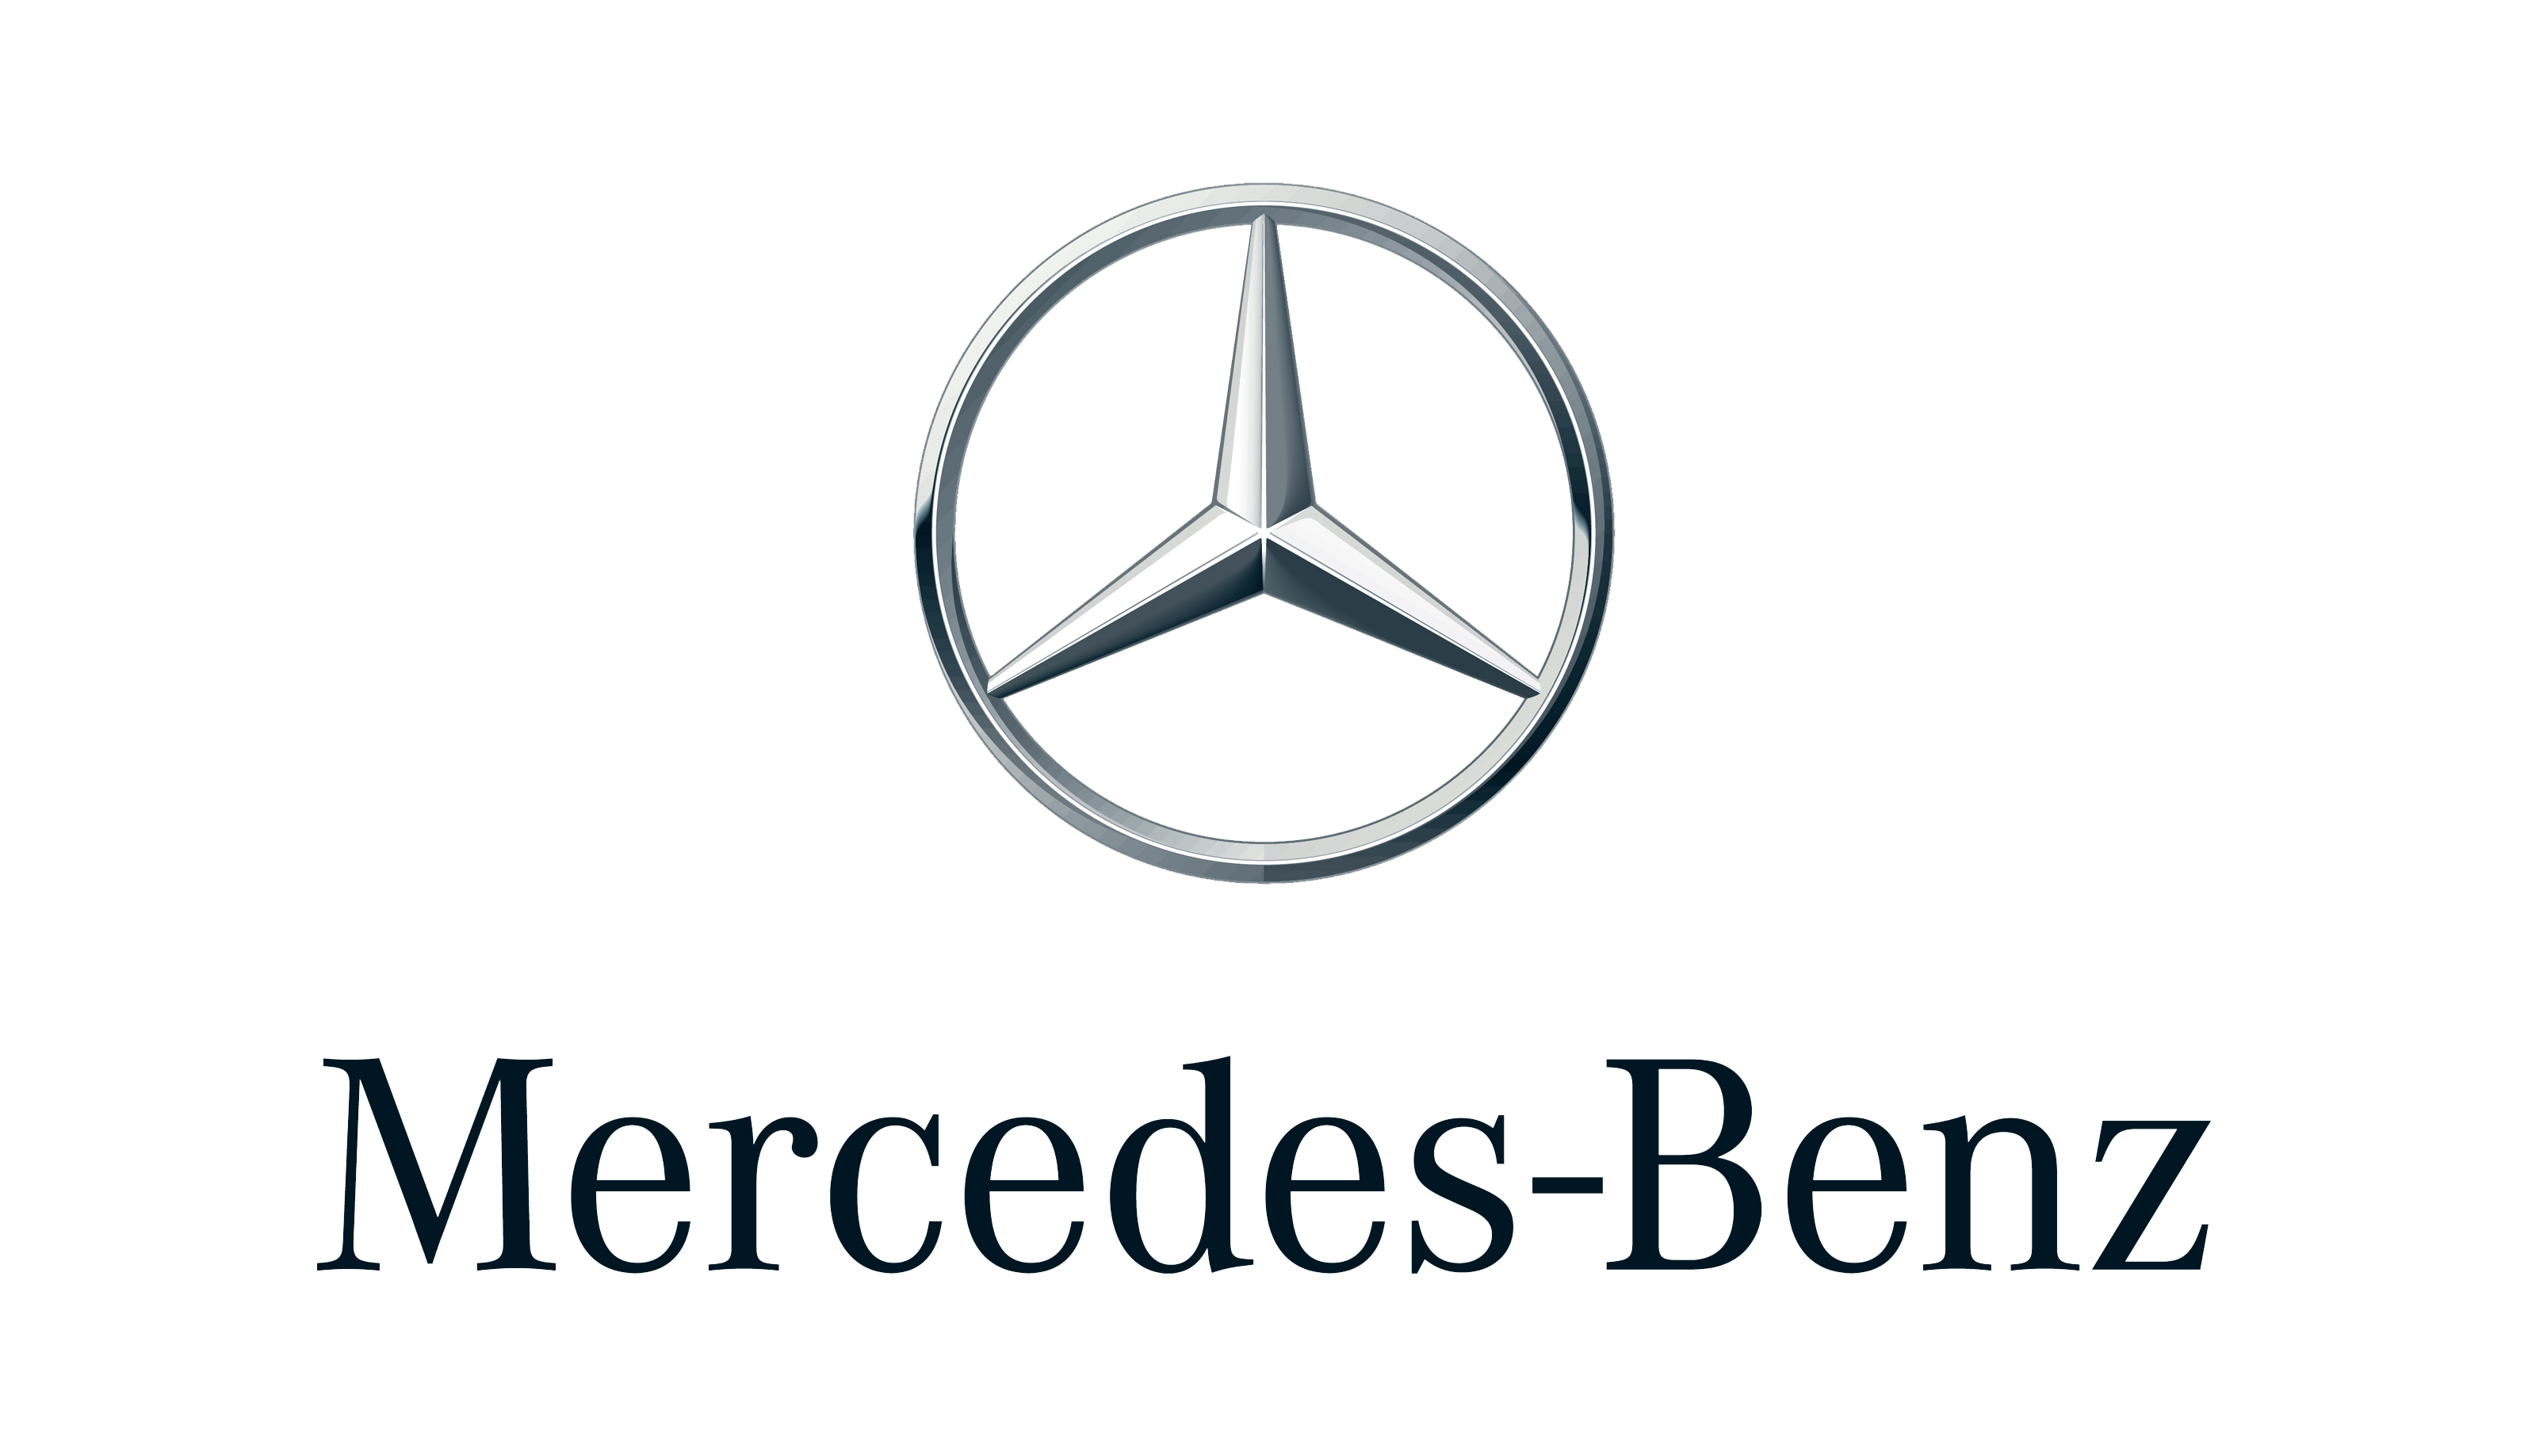 Mercedes benz png hd